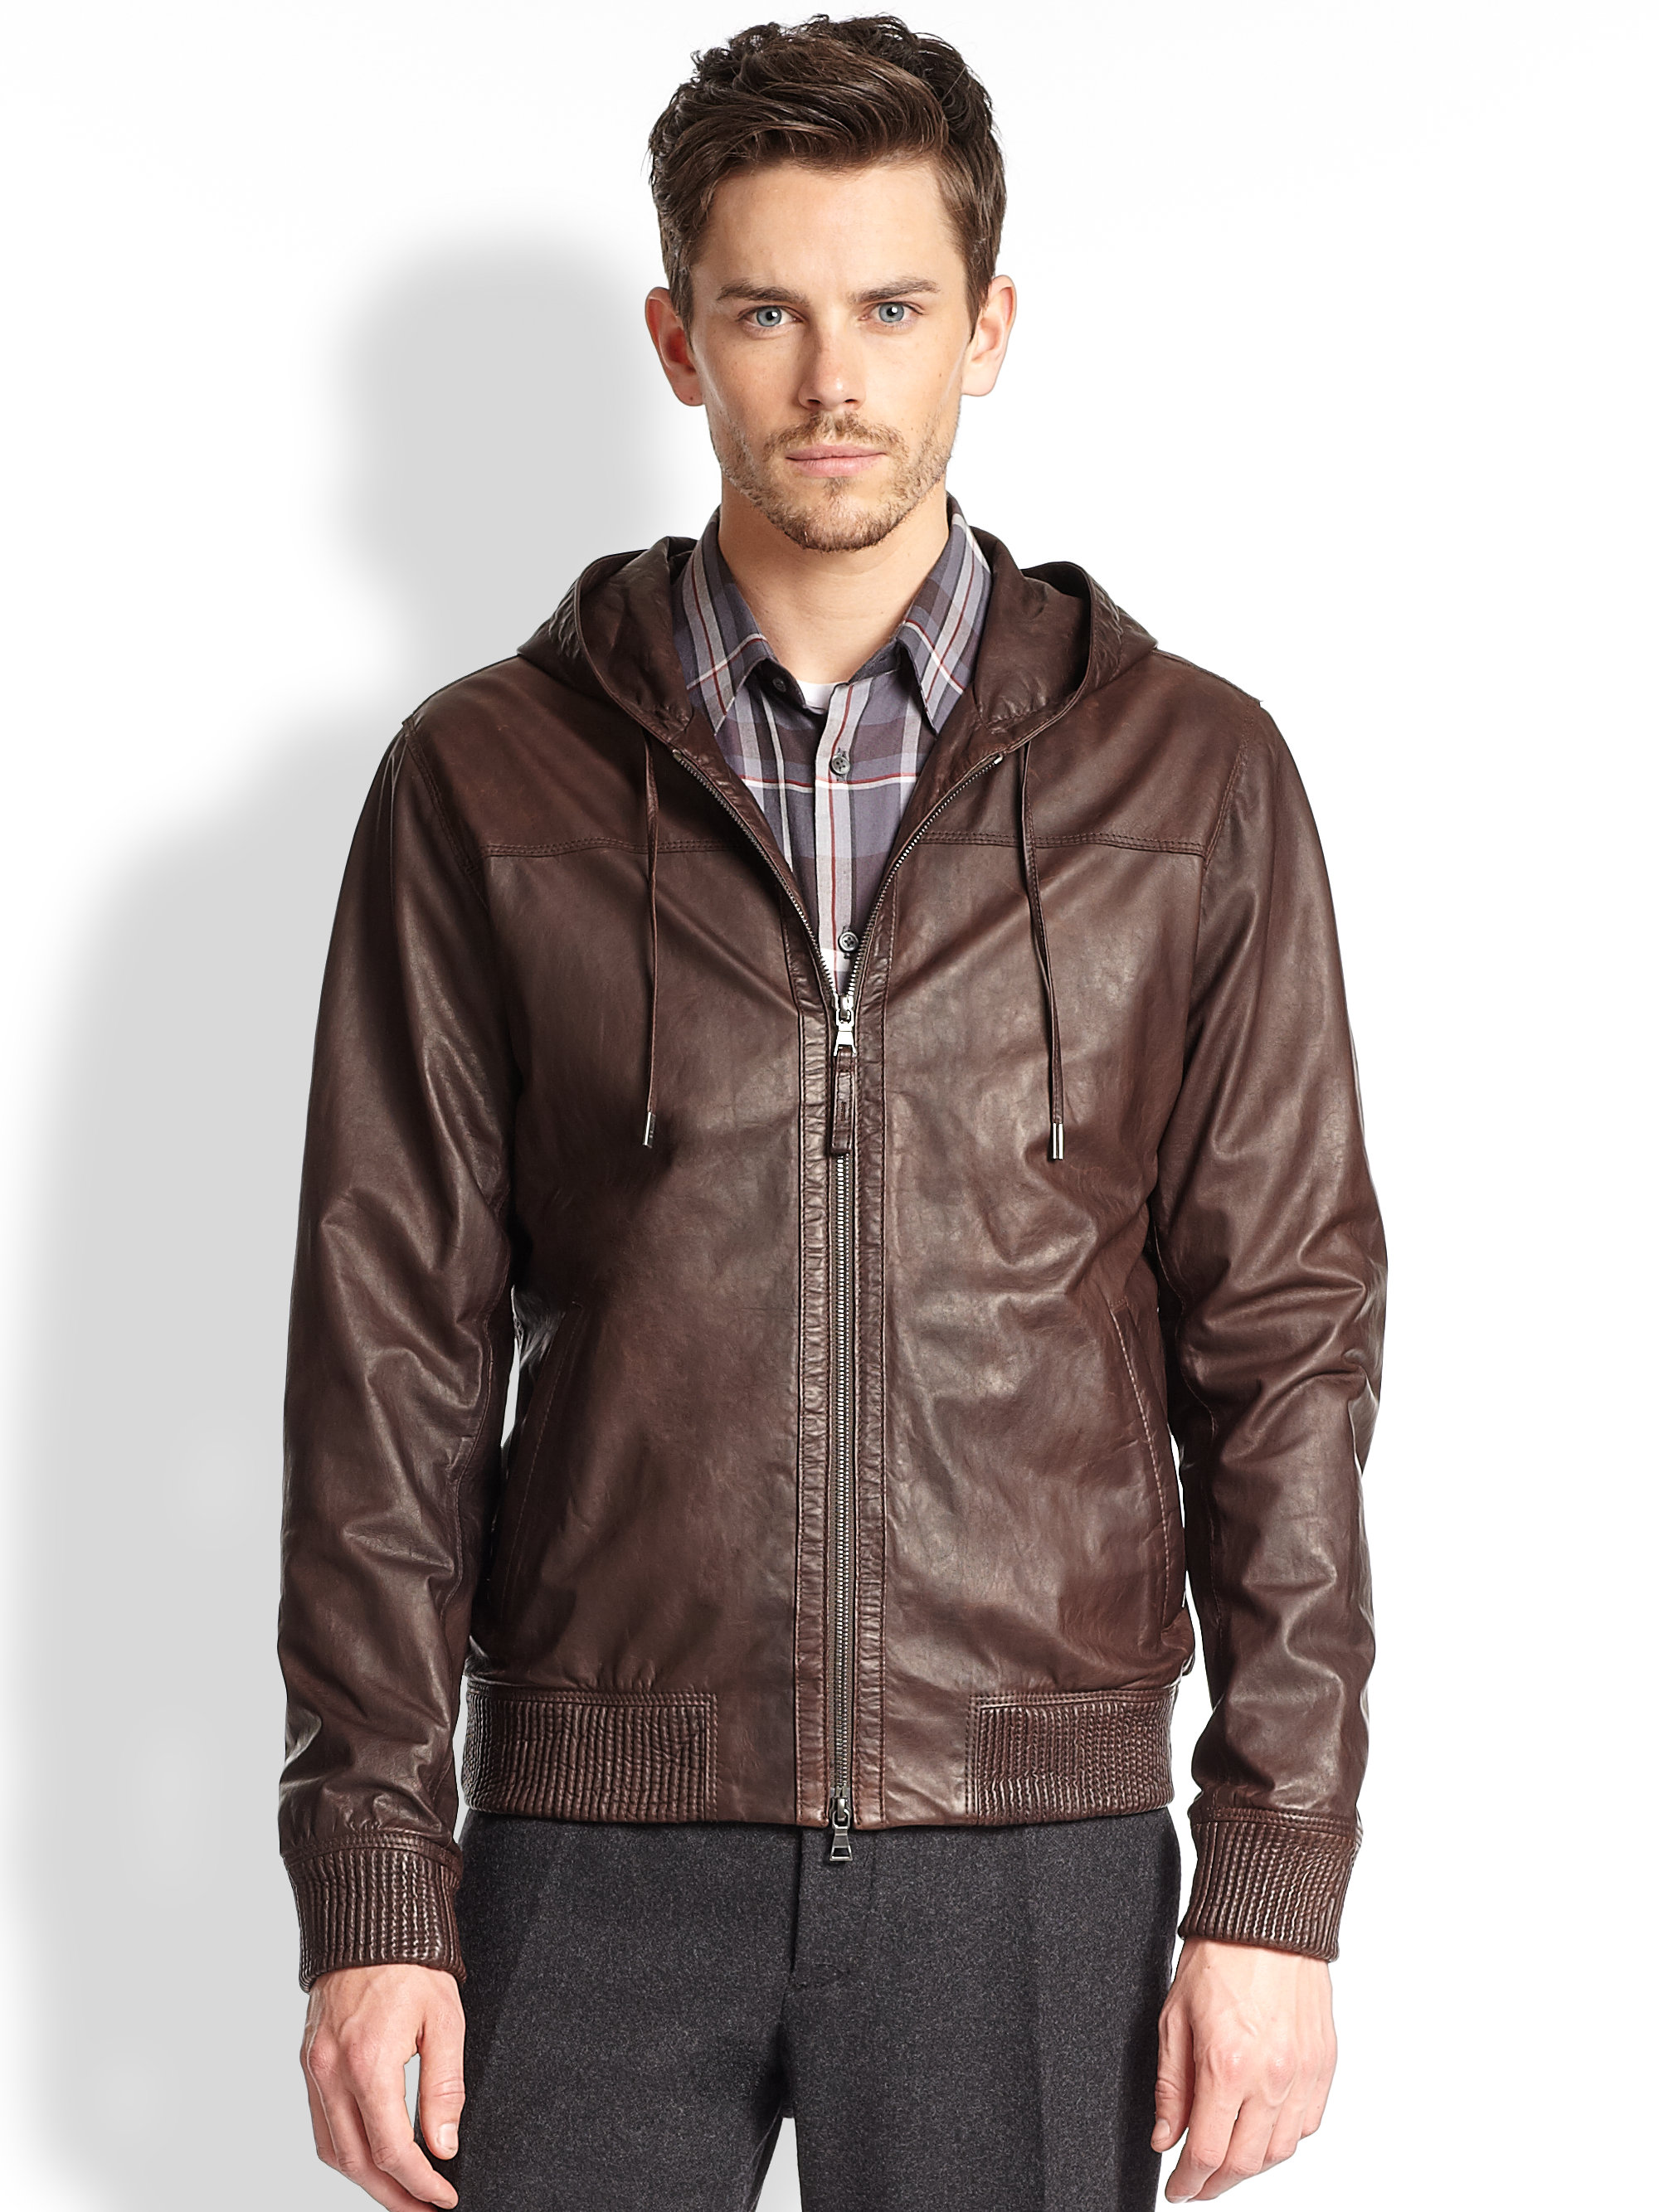 Hooded brown leather jacket